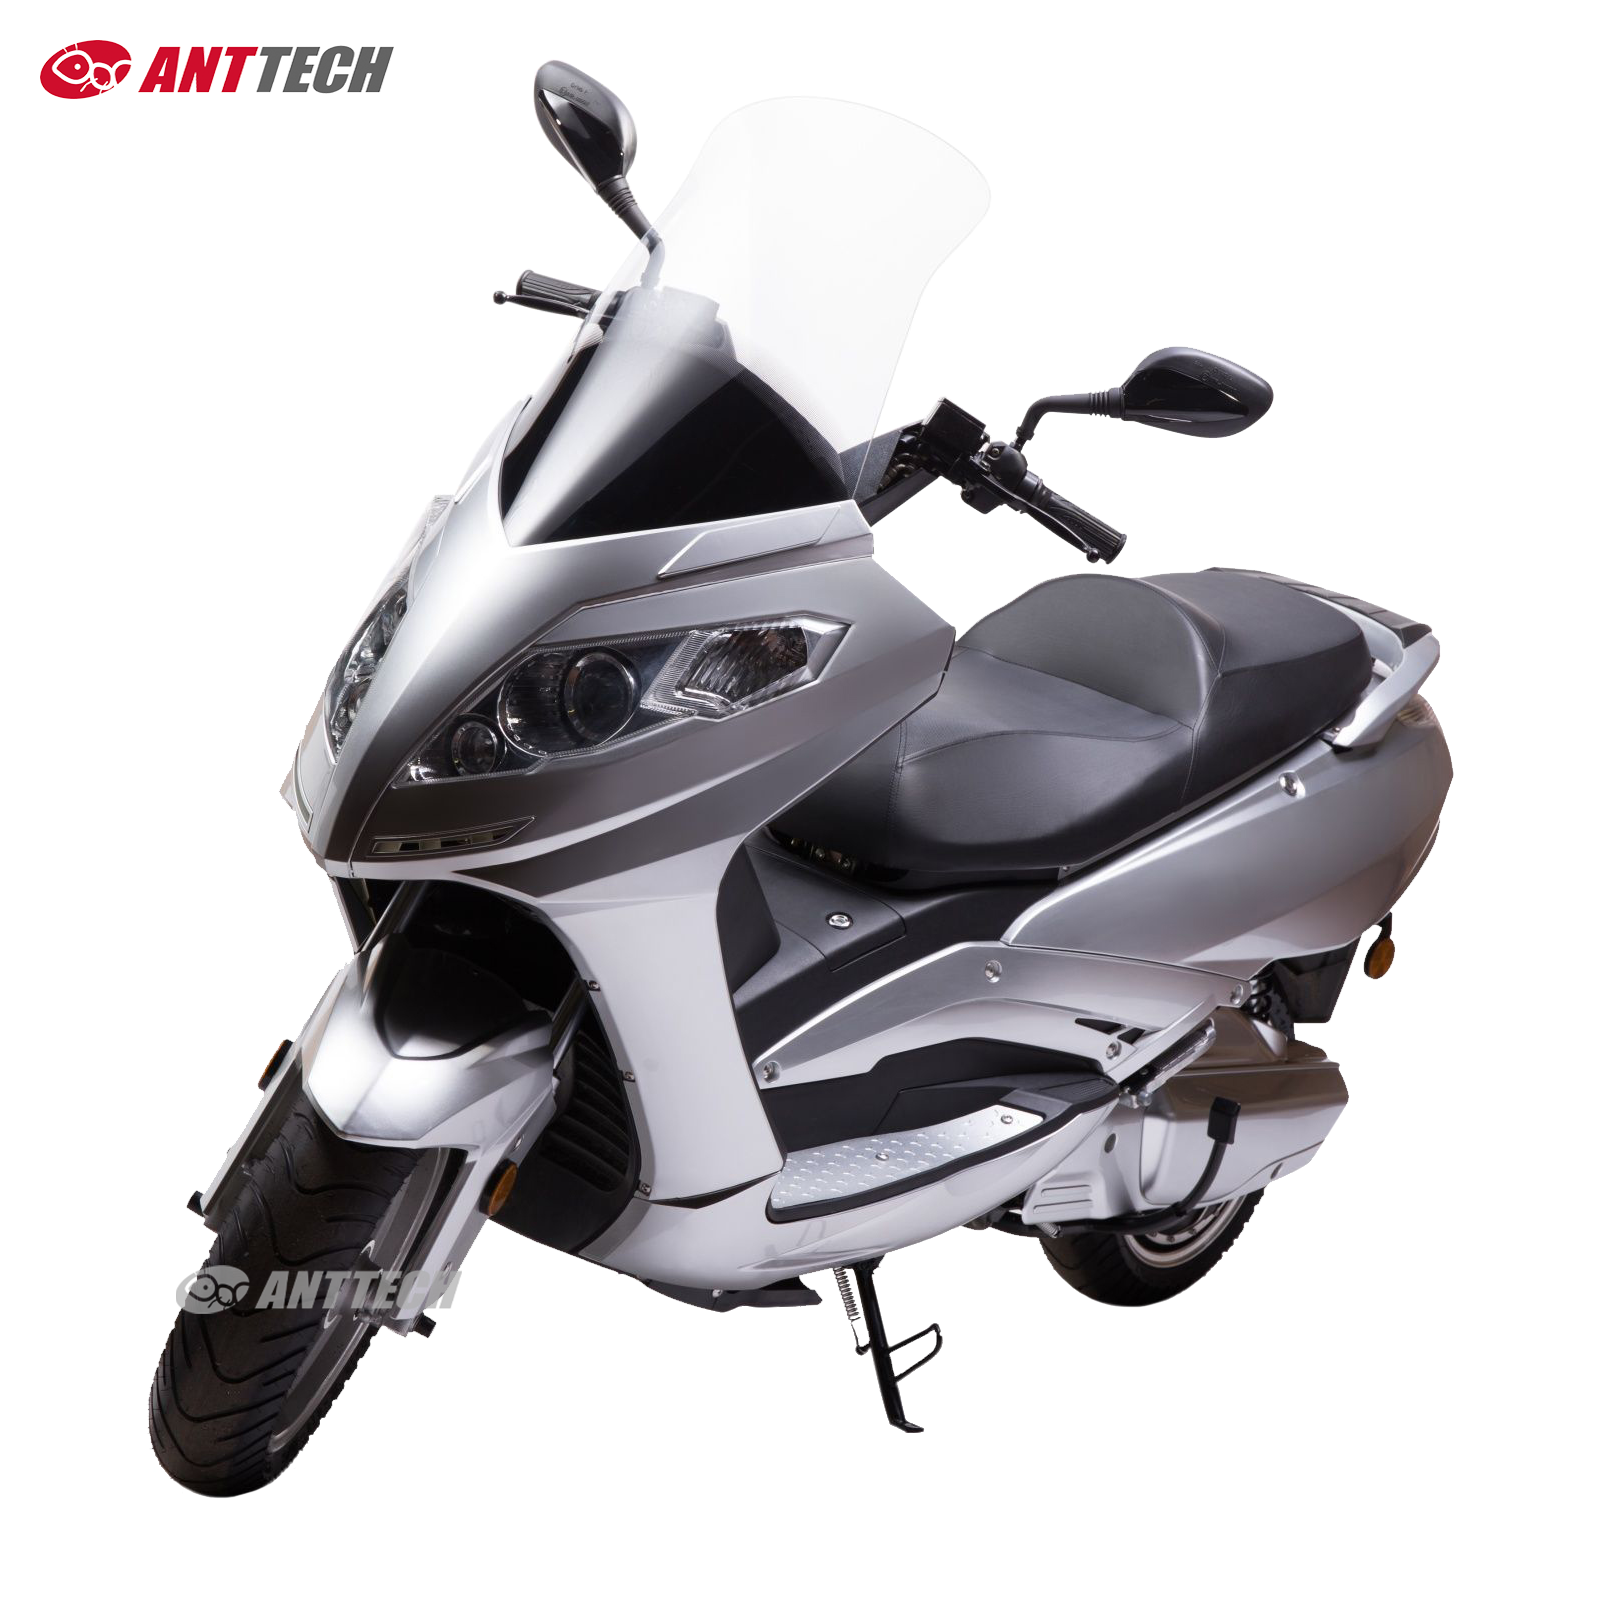 PUMA-X 9000W EEC certificate Max speed 120km/h long range 255km lithium battery racing electric motorcycle